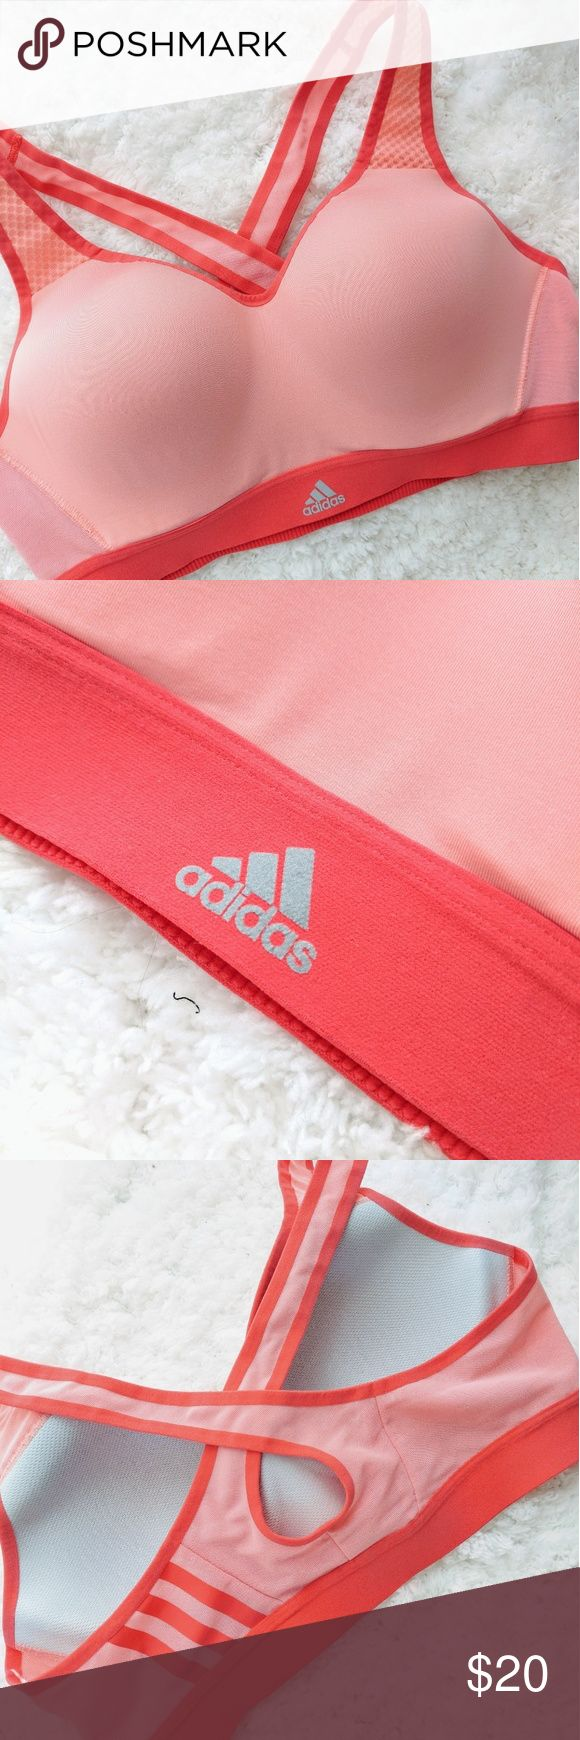 Adidas Supernova X Sports Bra Worn Once  Like new  Size Medium Very soft and has very good support Adidas Intimates & Sleepwear Bras